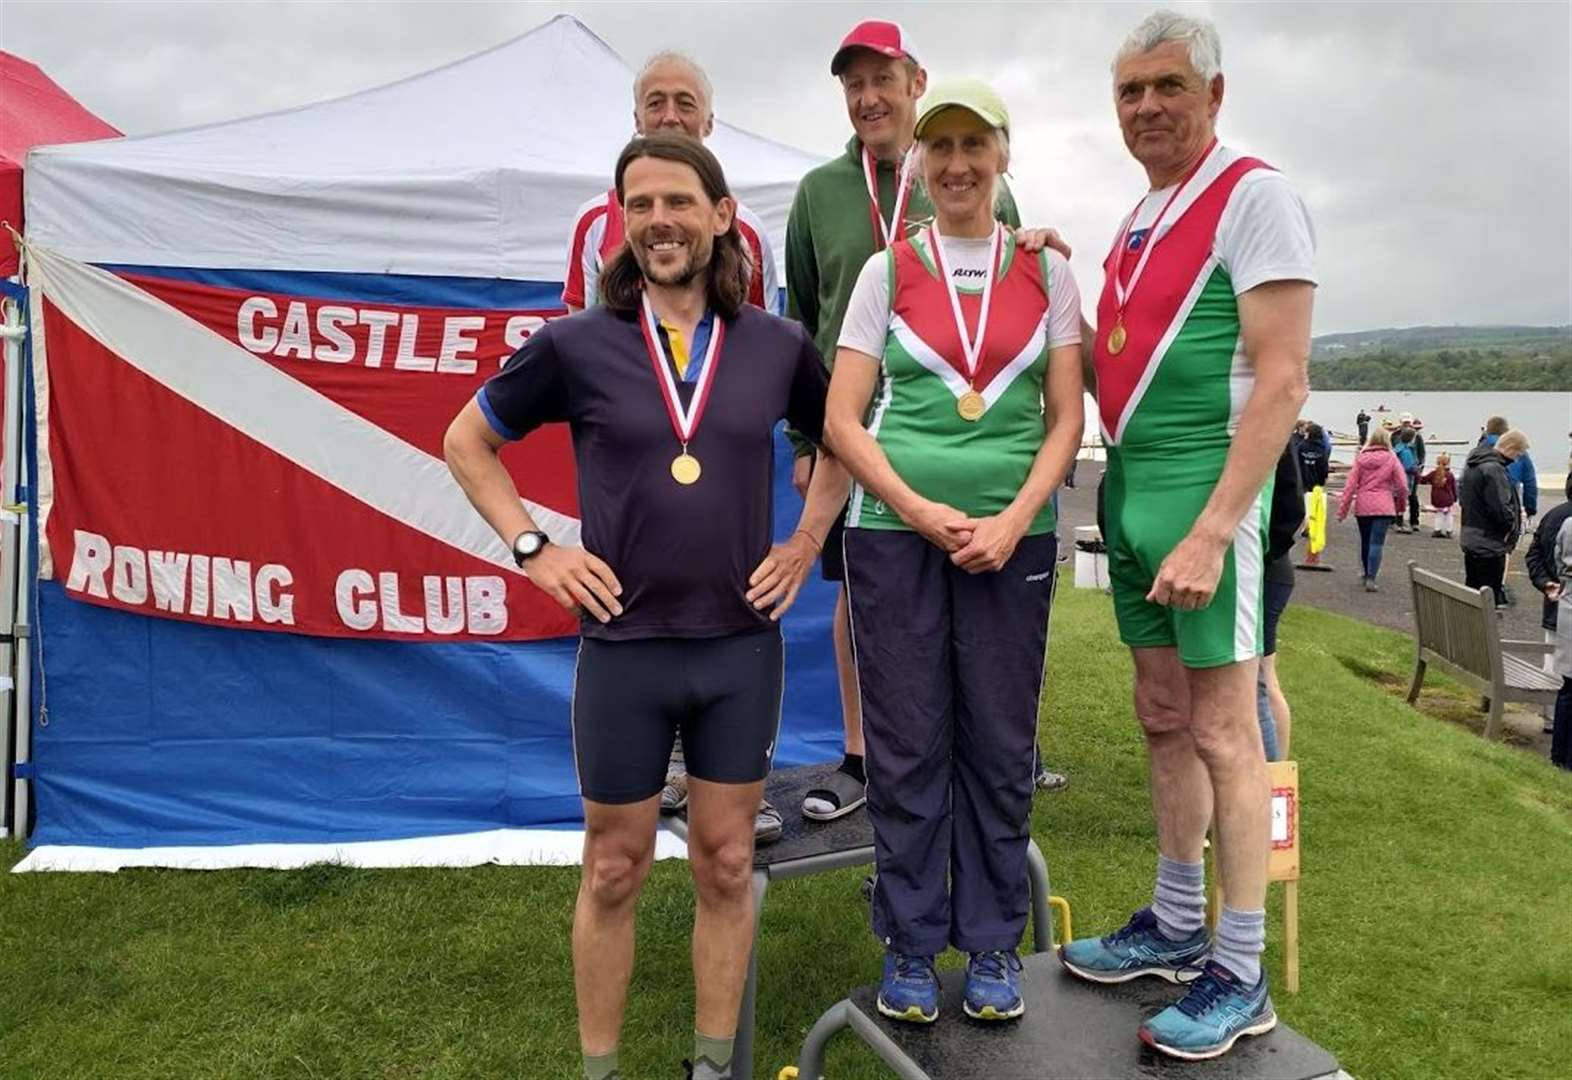 Medal joy for Inverness Rowing Club